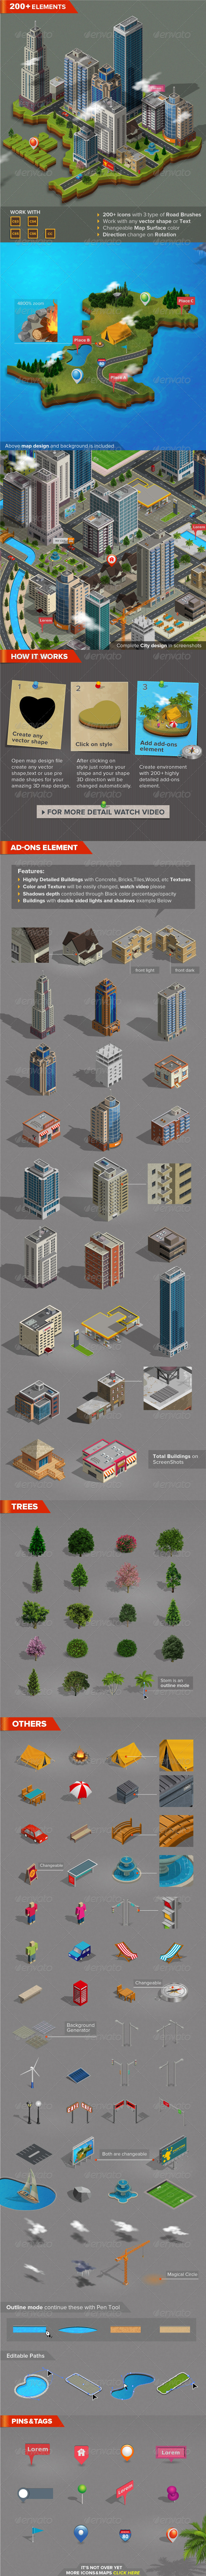 GraphicRiver 3D City and Map Generator 7688347